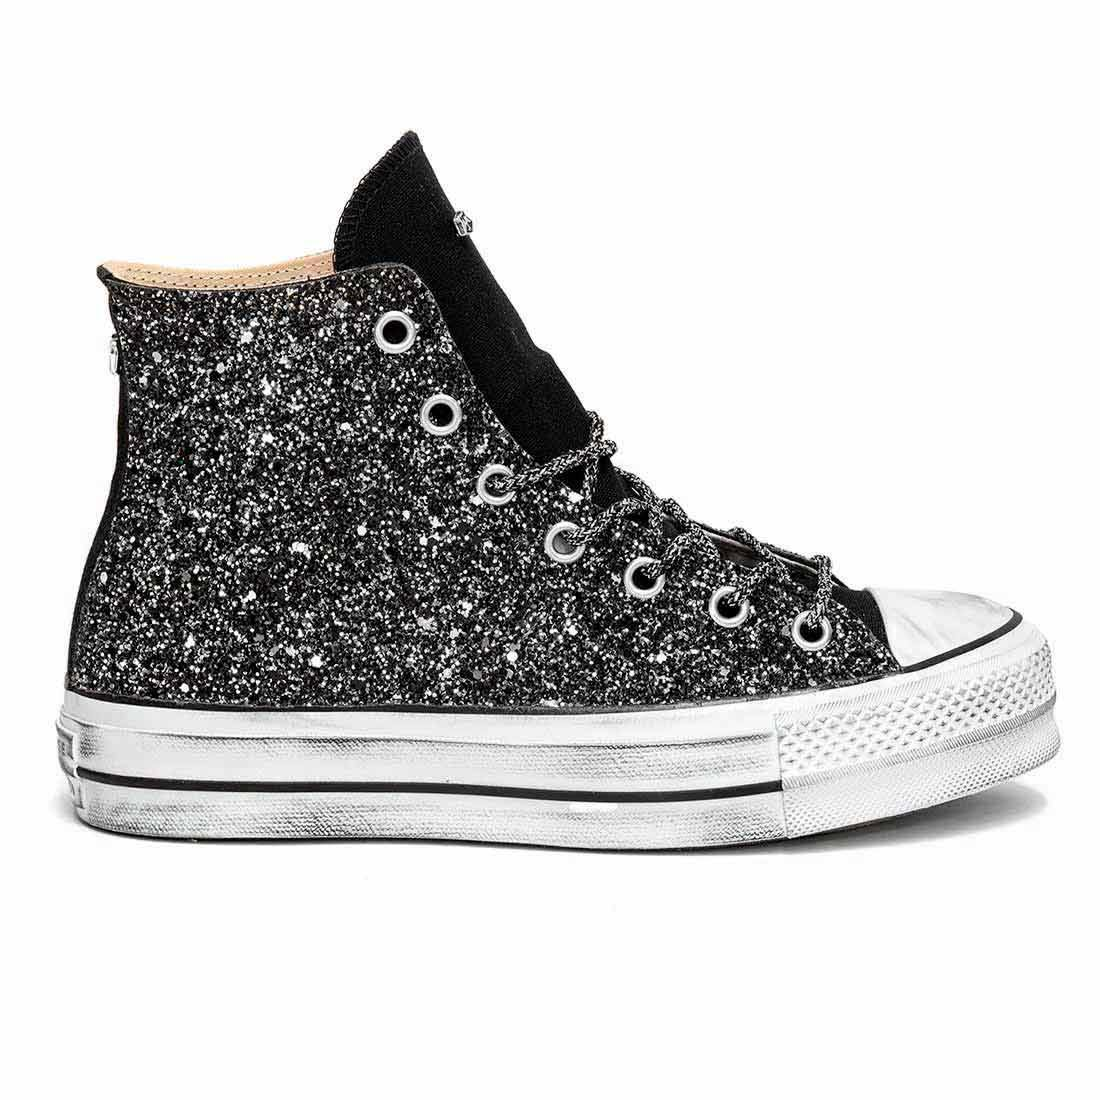 Acquista converse donna glitter OFF60% sconti